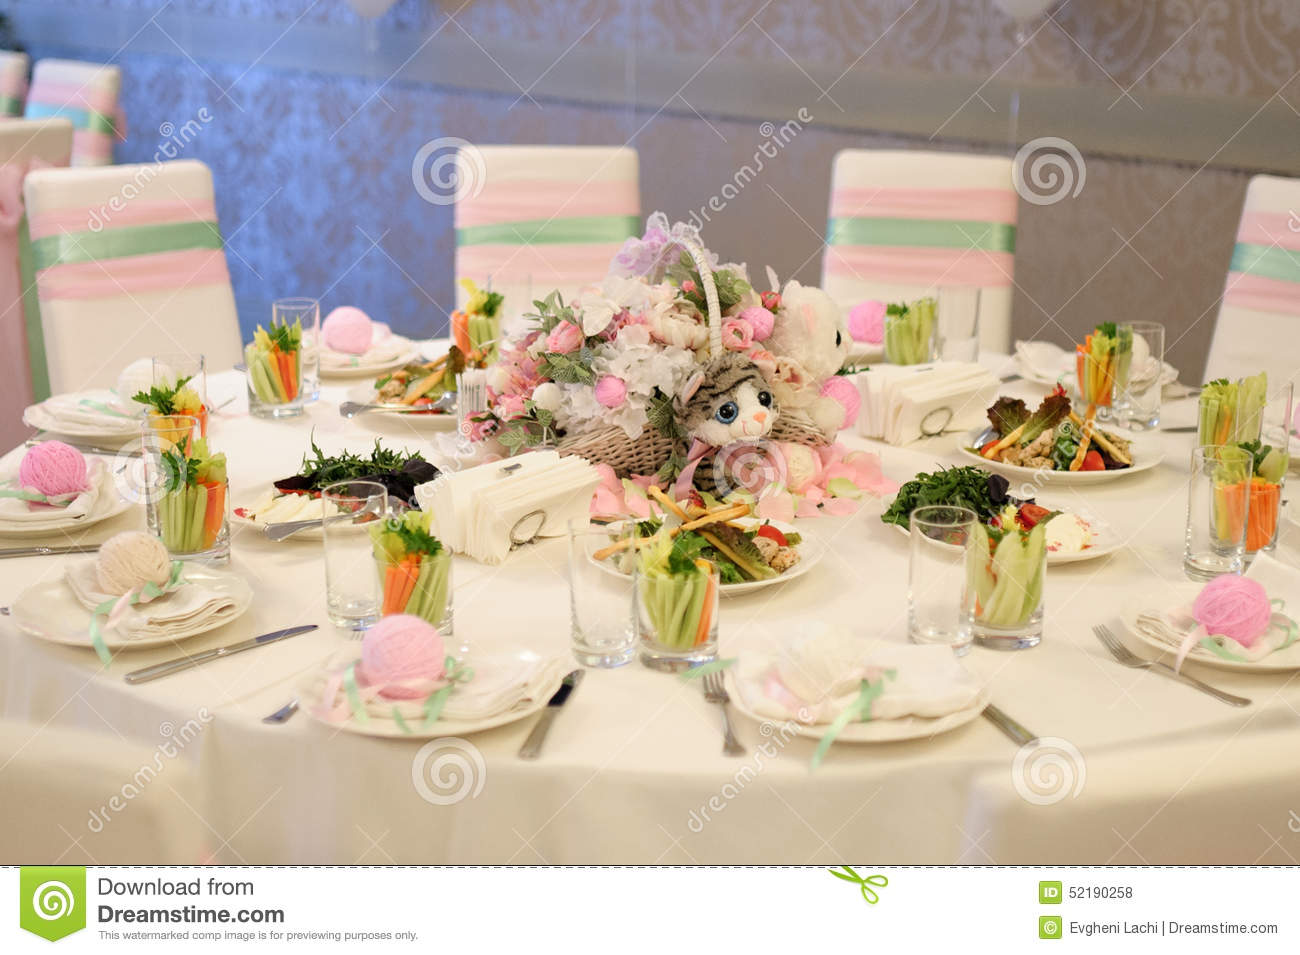 Banquet birthday table setting. On evening reception Royalty Free Stock Photos & Birthday Table Setting Stock Photos - 5275 Images